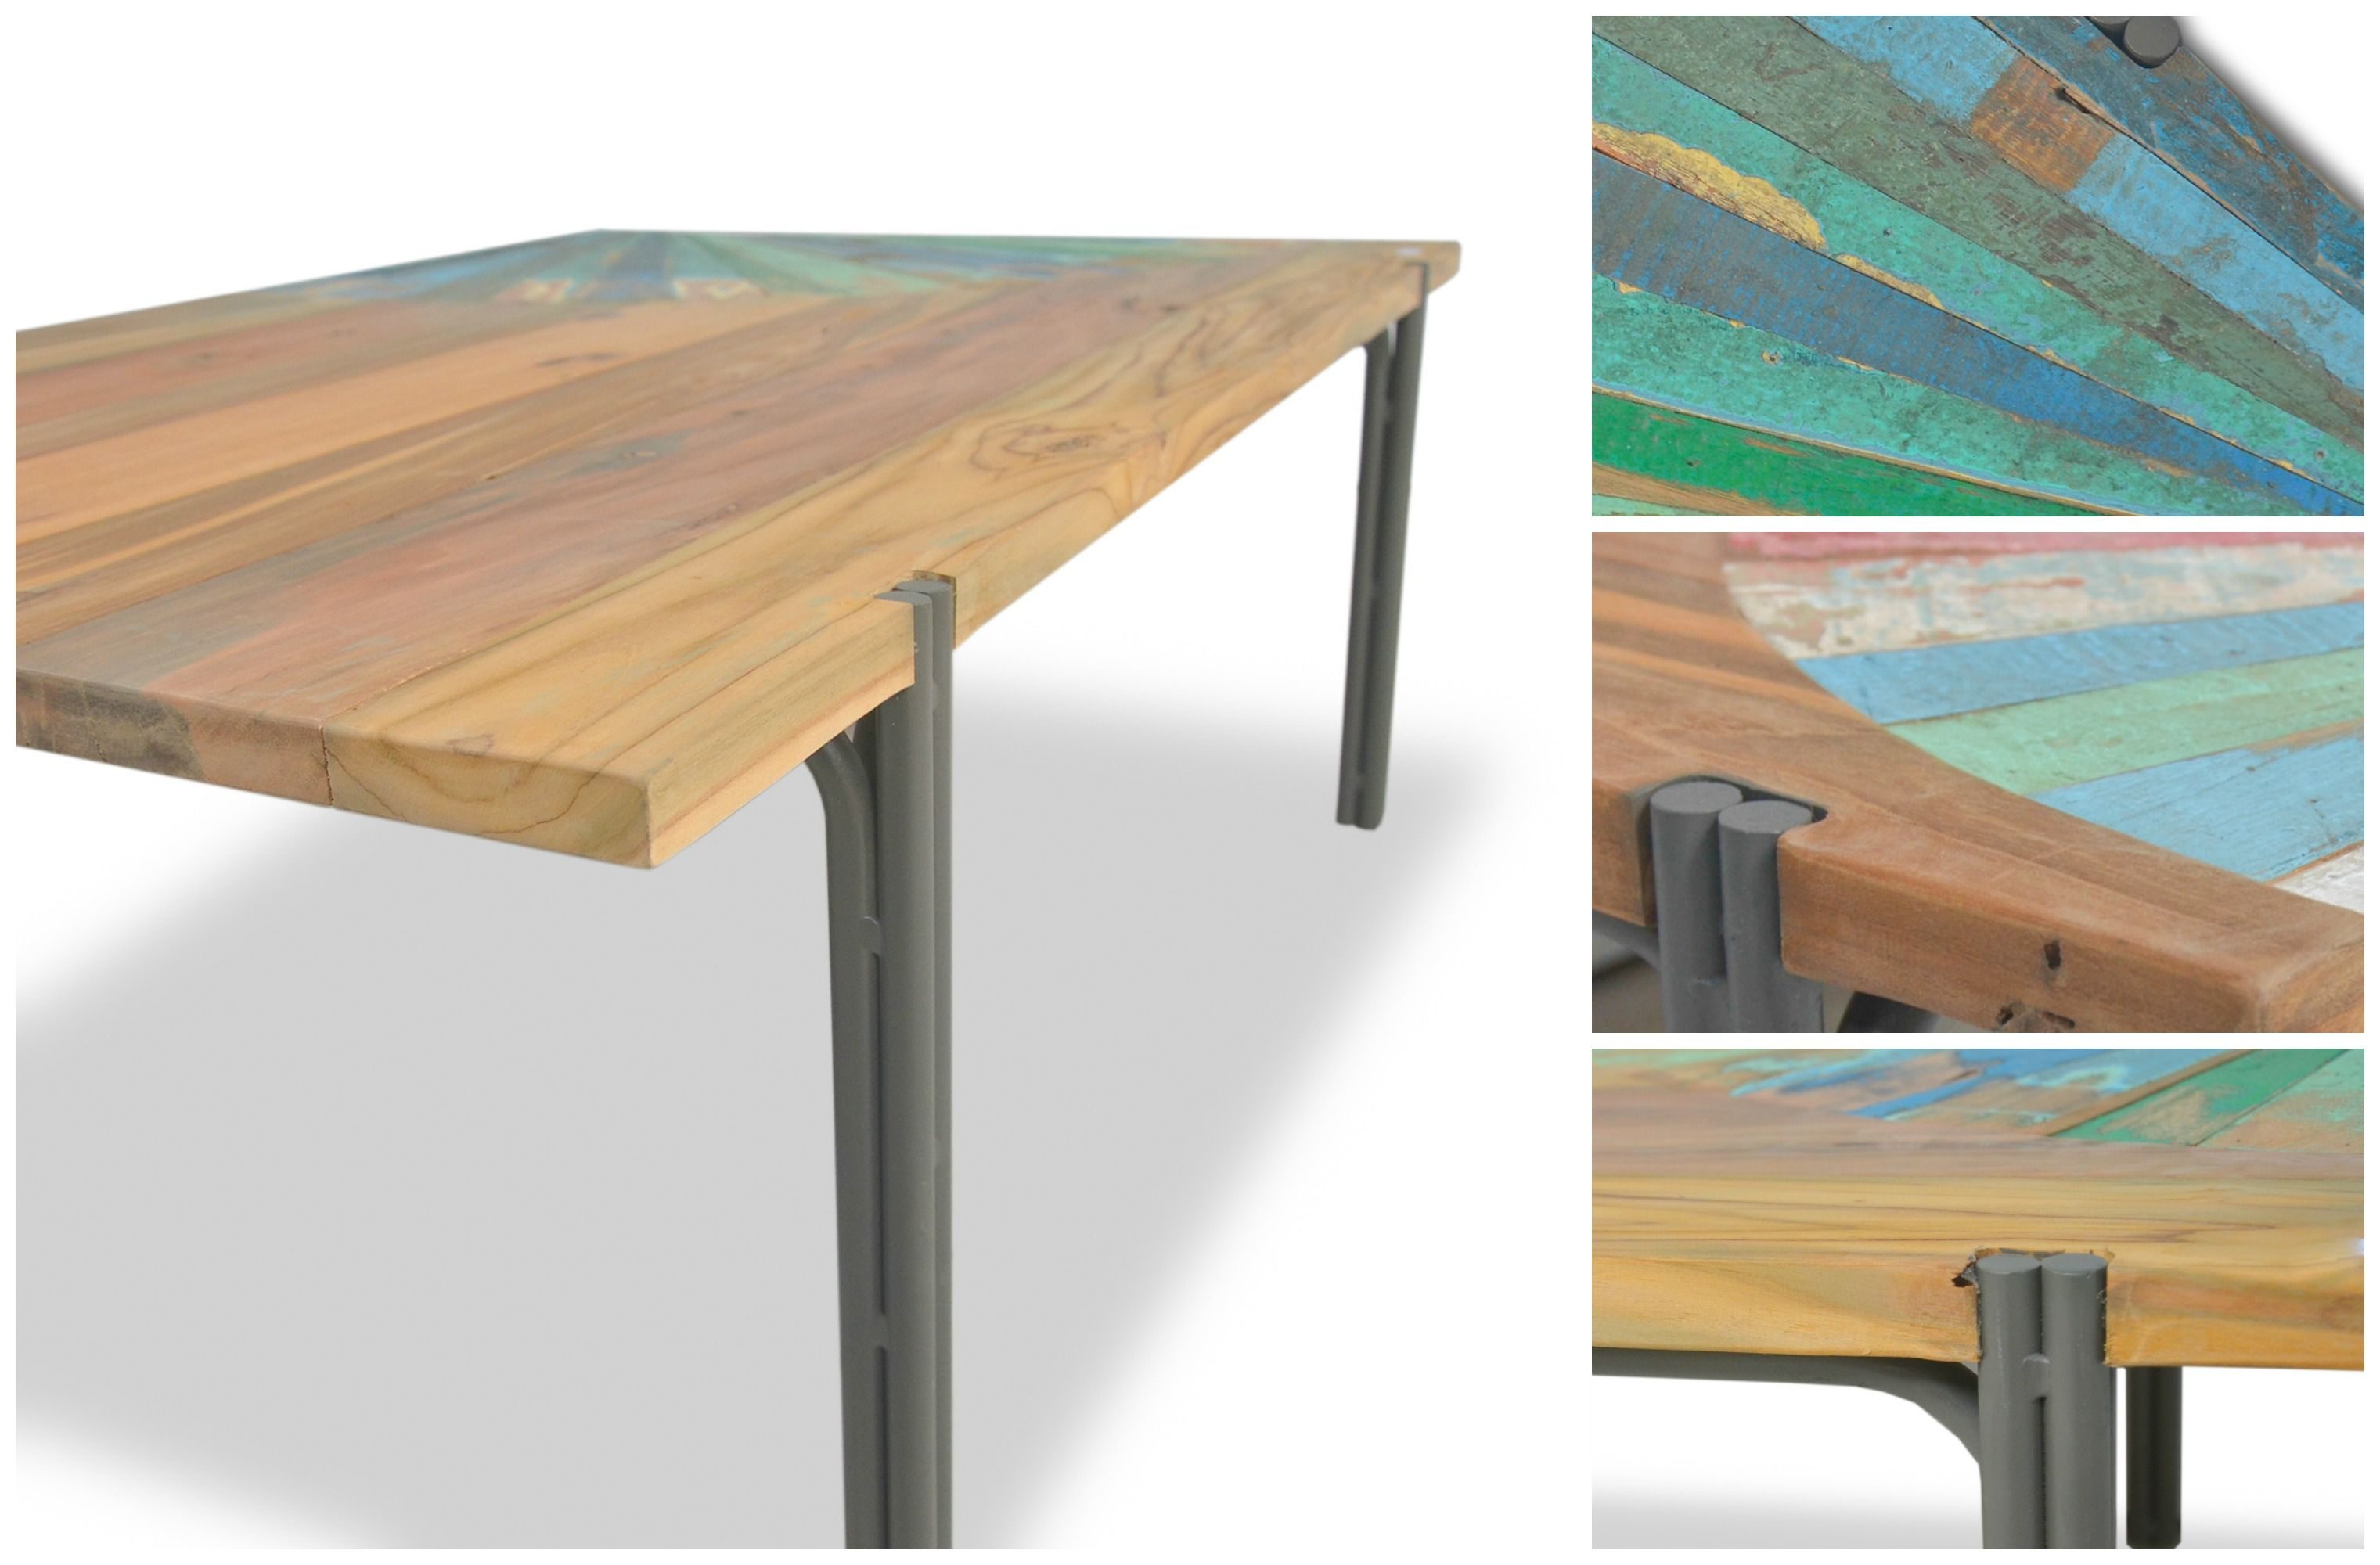 Permalink to Incroyable De Table De Salon En Bois